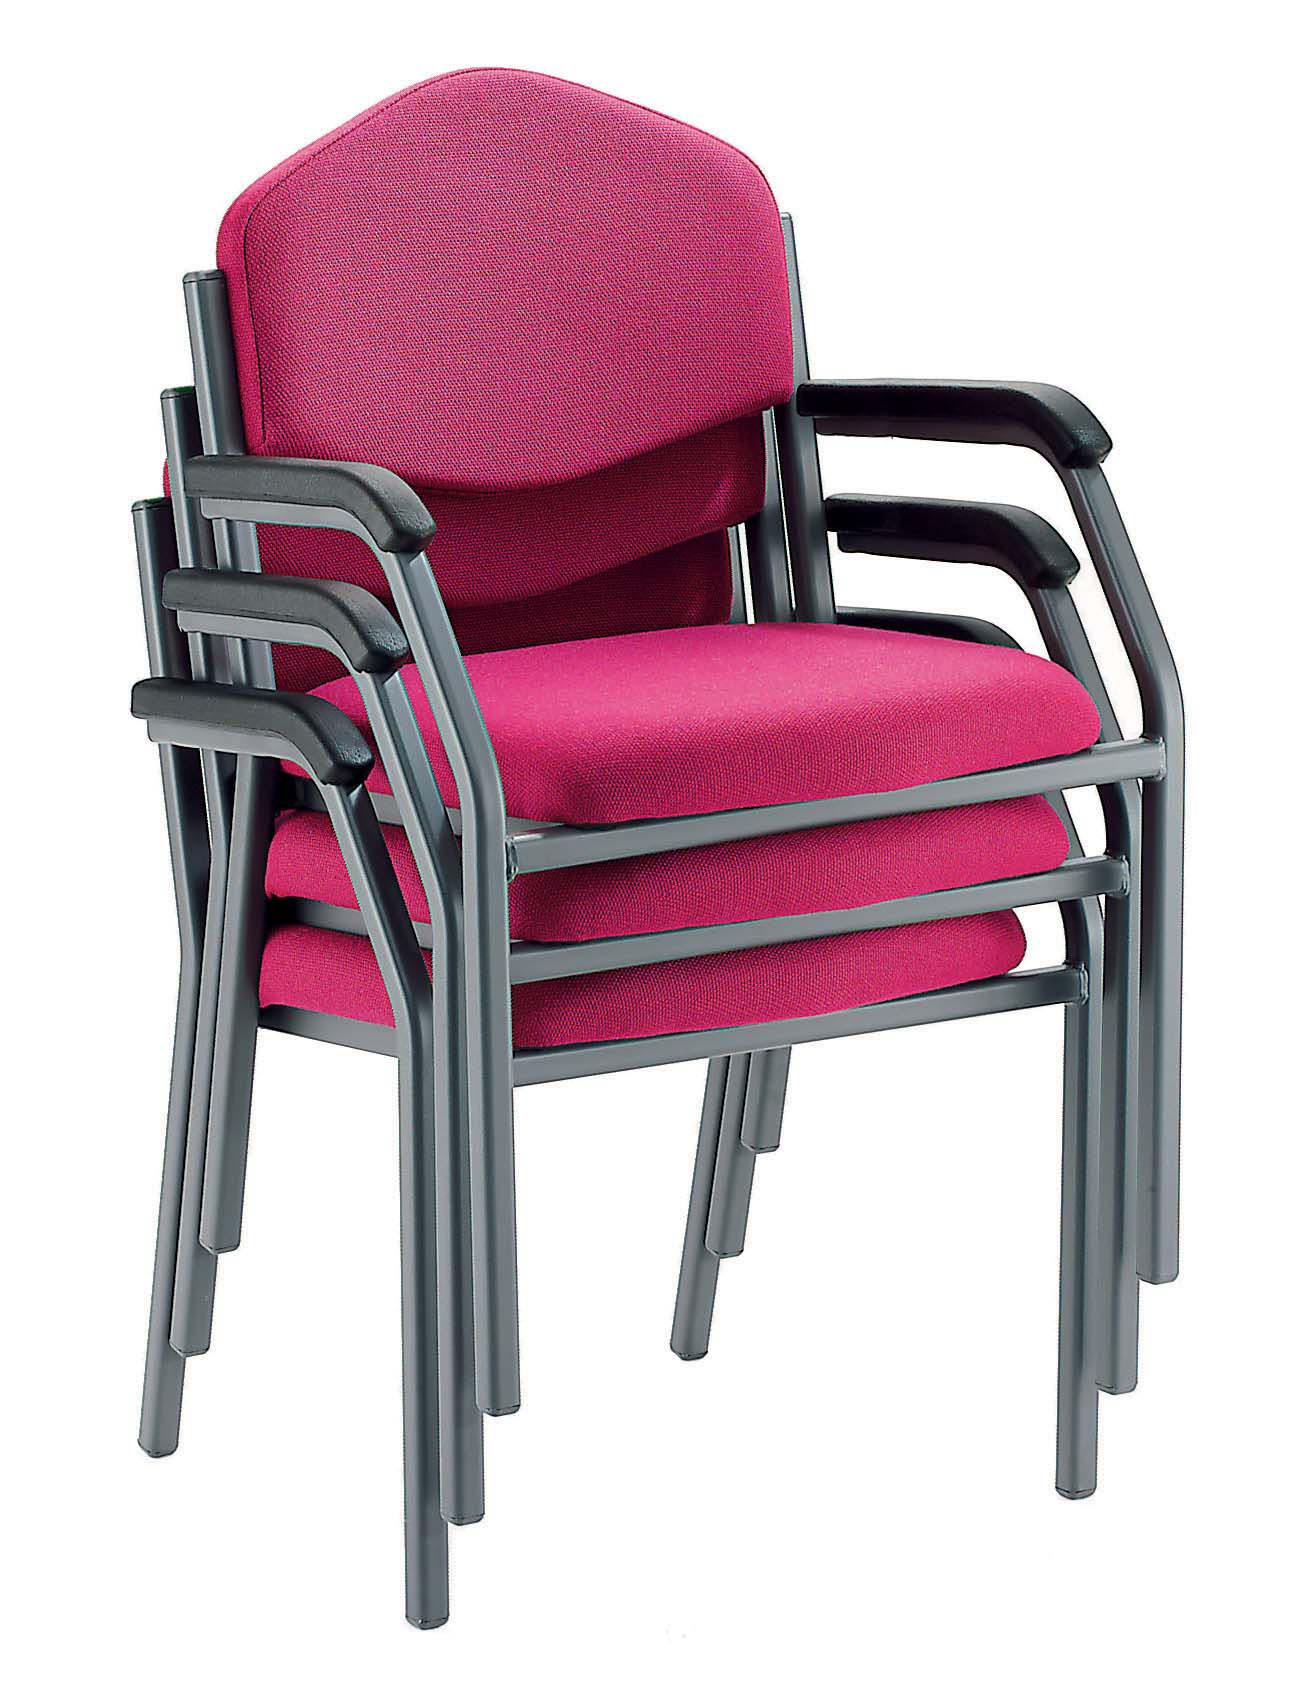 Heavy Duty Visitor Chairs Richardsons Office Furniture  : Heavy Duty Chairs 40 from www.richardsonsoffice.co.uk size 1300 x 1684 jpeg 236kB